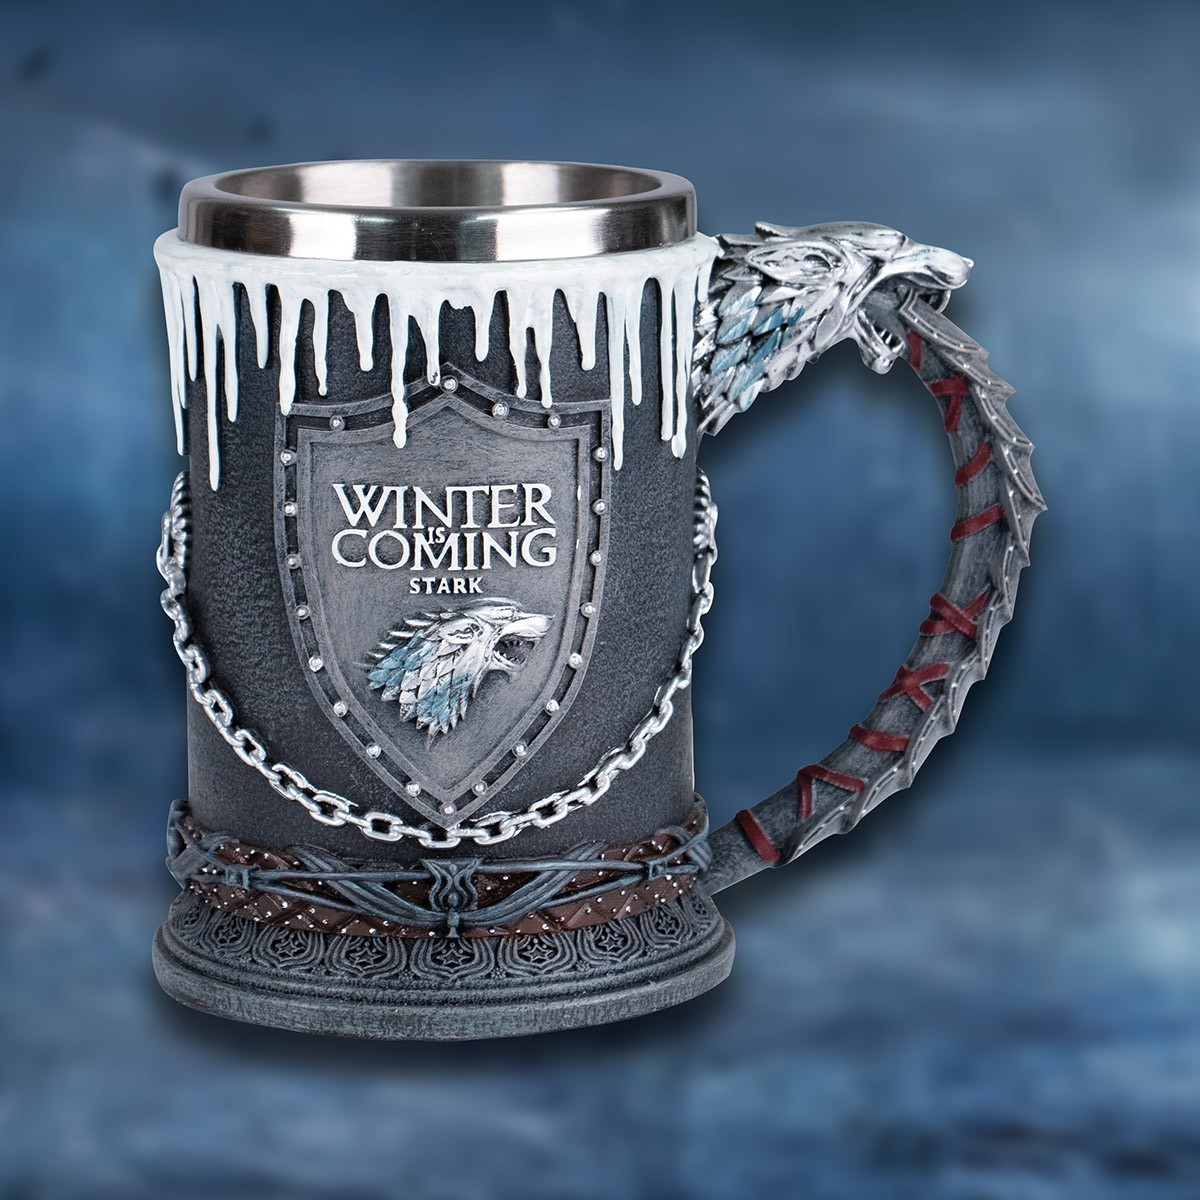 Game of Thrones Winter is Coming Stark Tankard